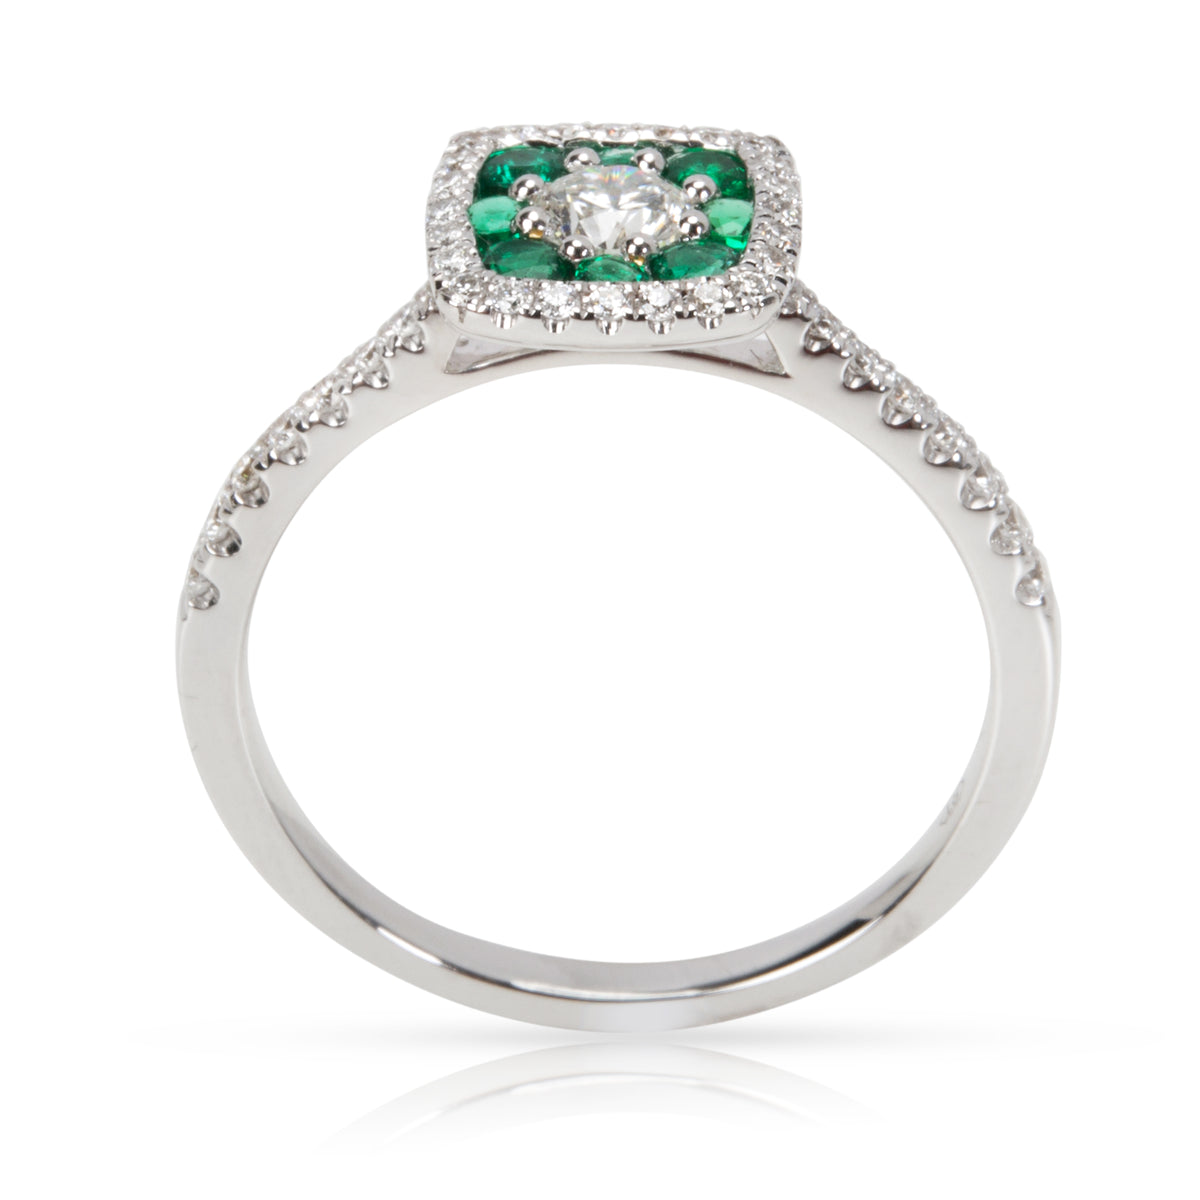 Diamond & Emerald Ring in 18KT White Gold 0.67ctw